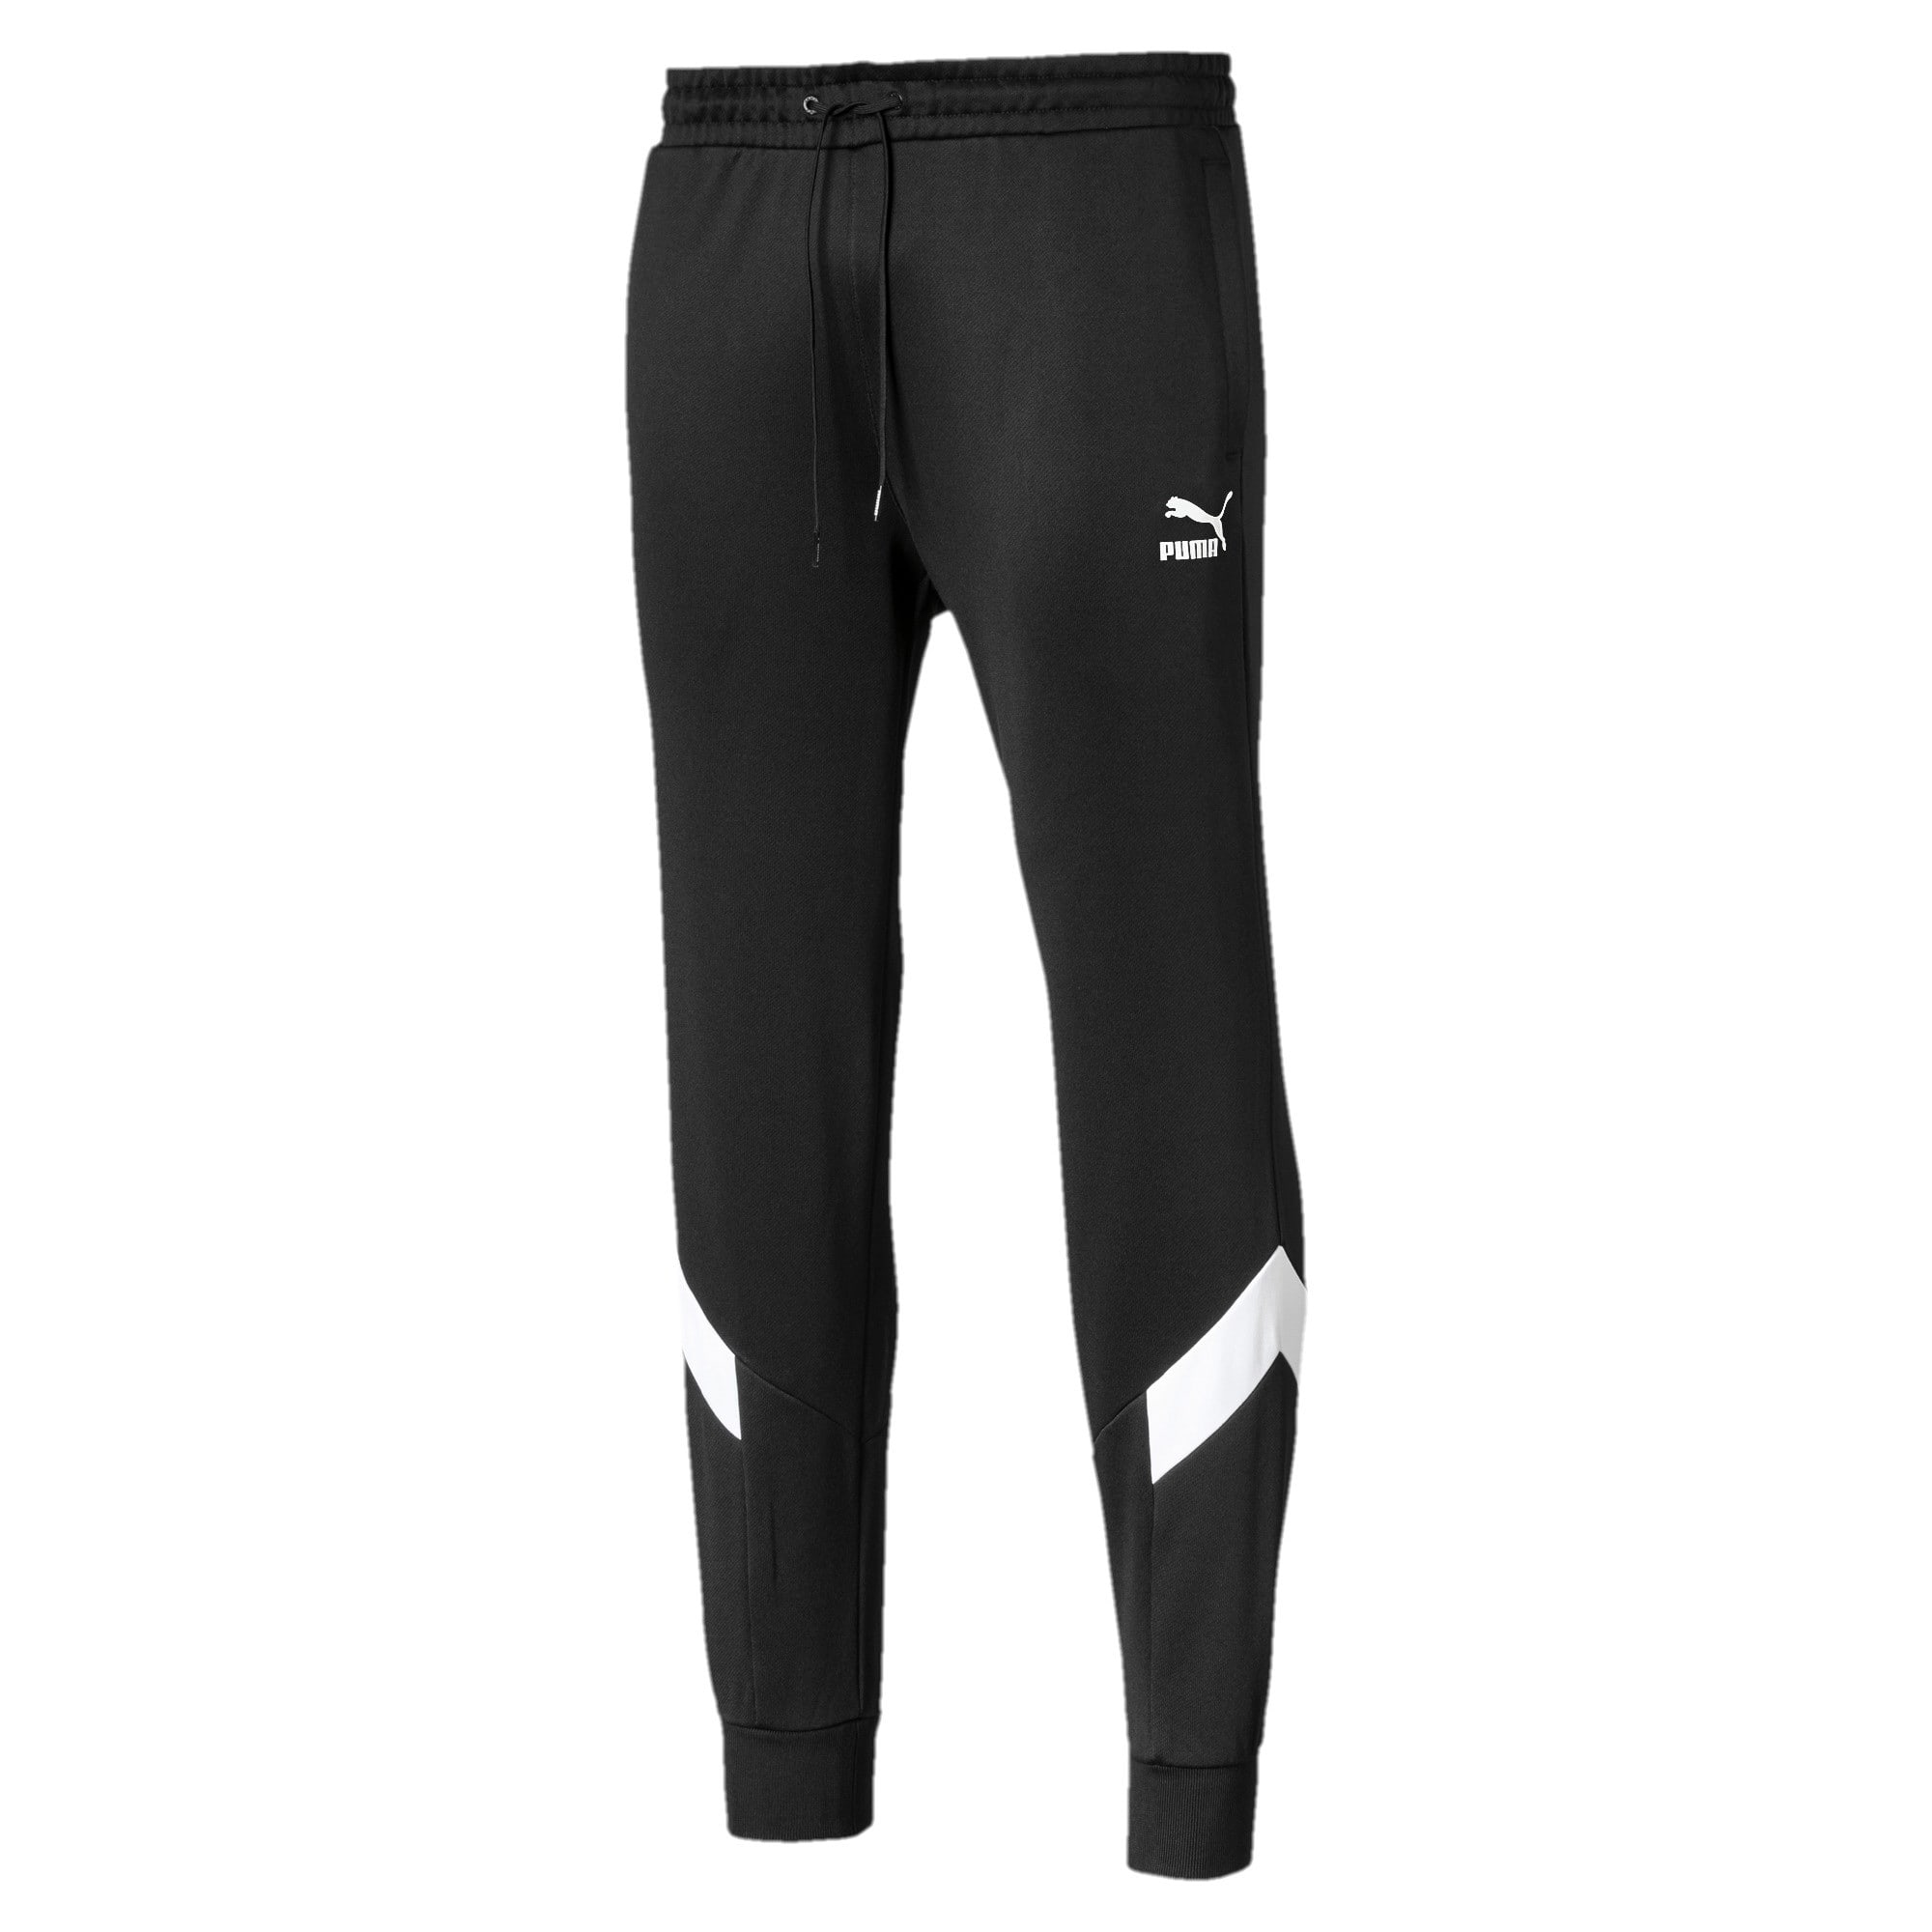 Thumbnail 4 of Iconic MCS Knitted Men's Track Pants, Puma Black, medium